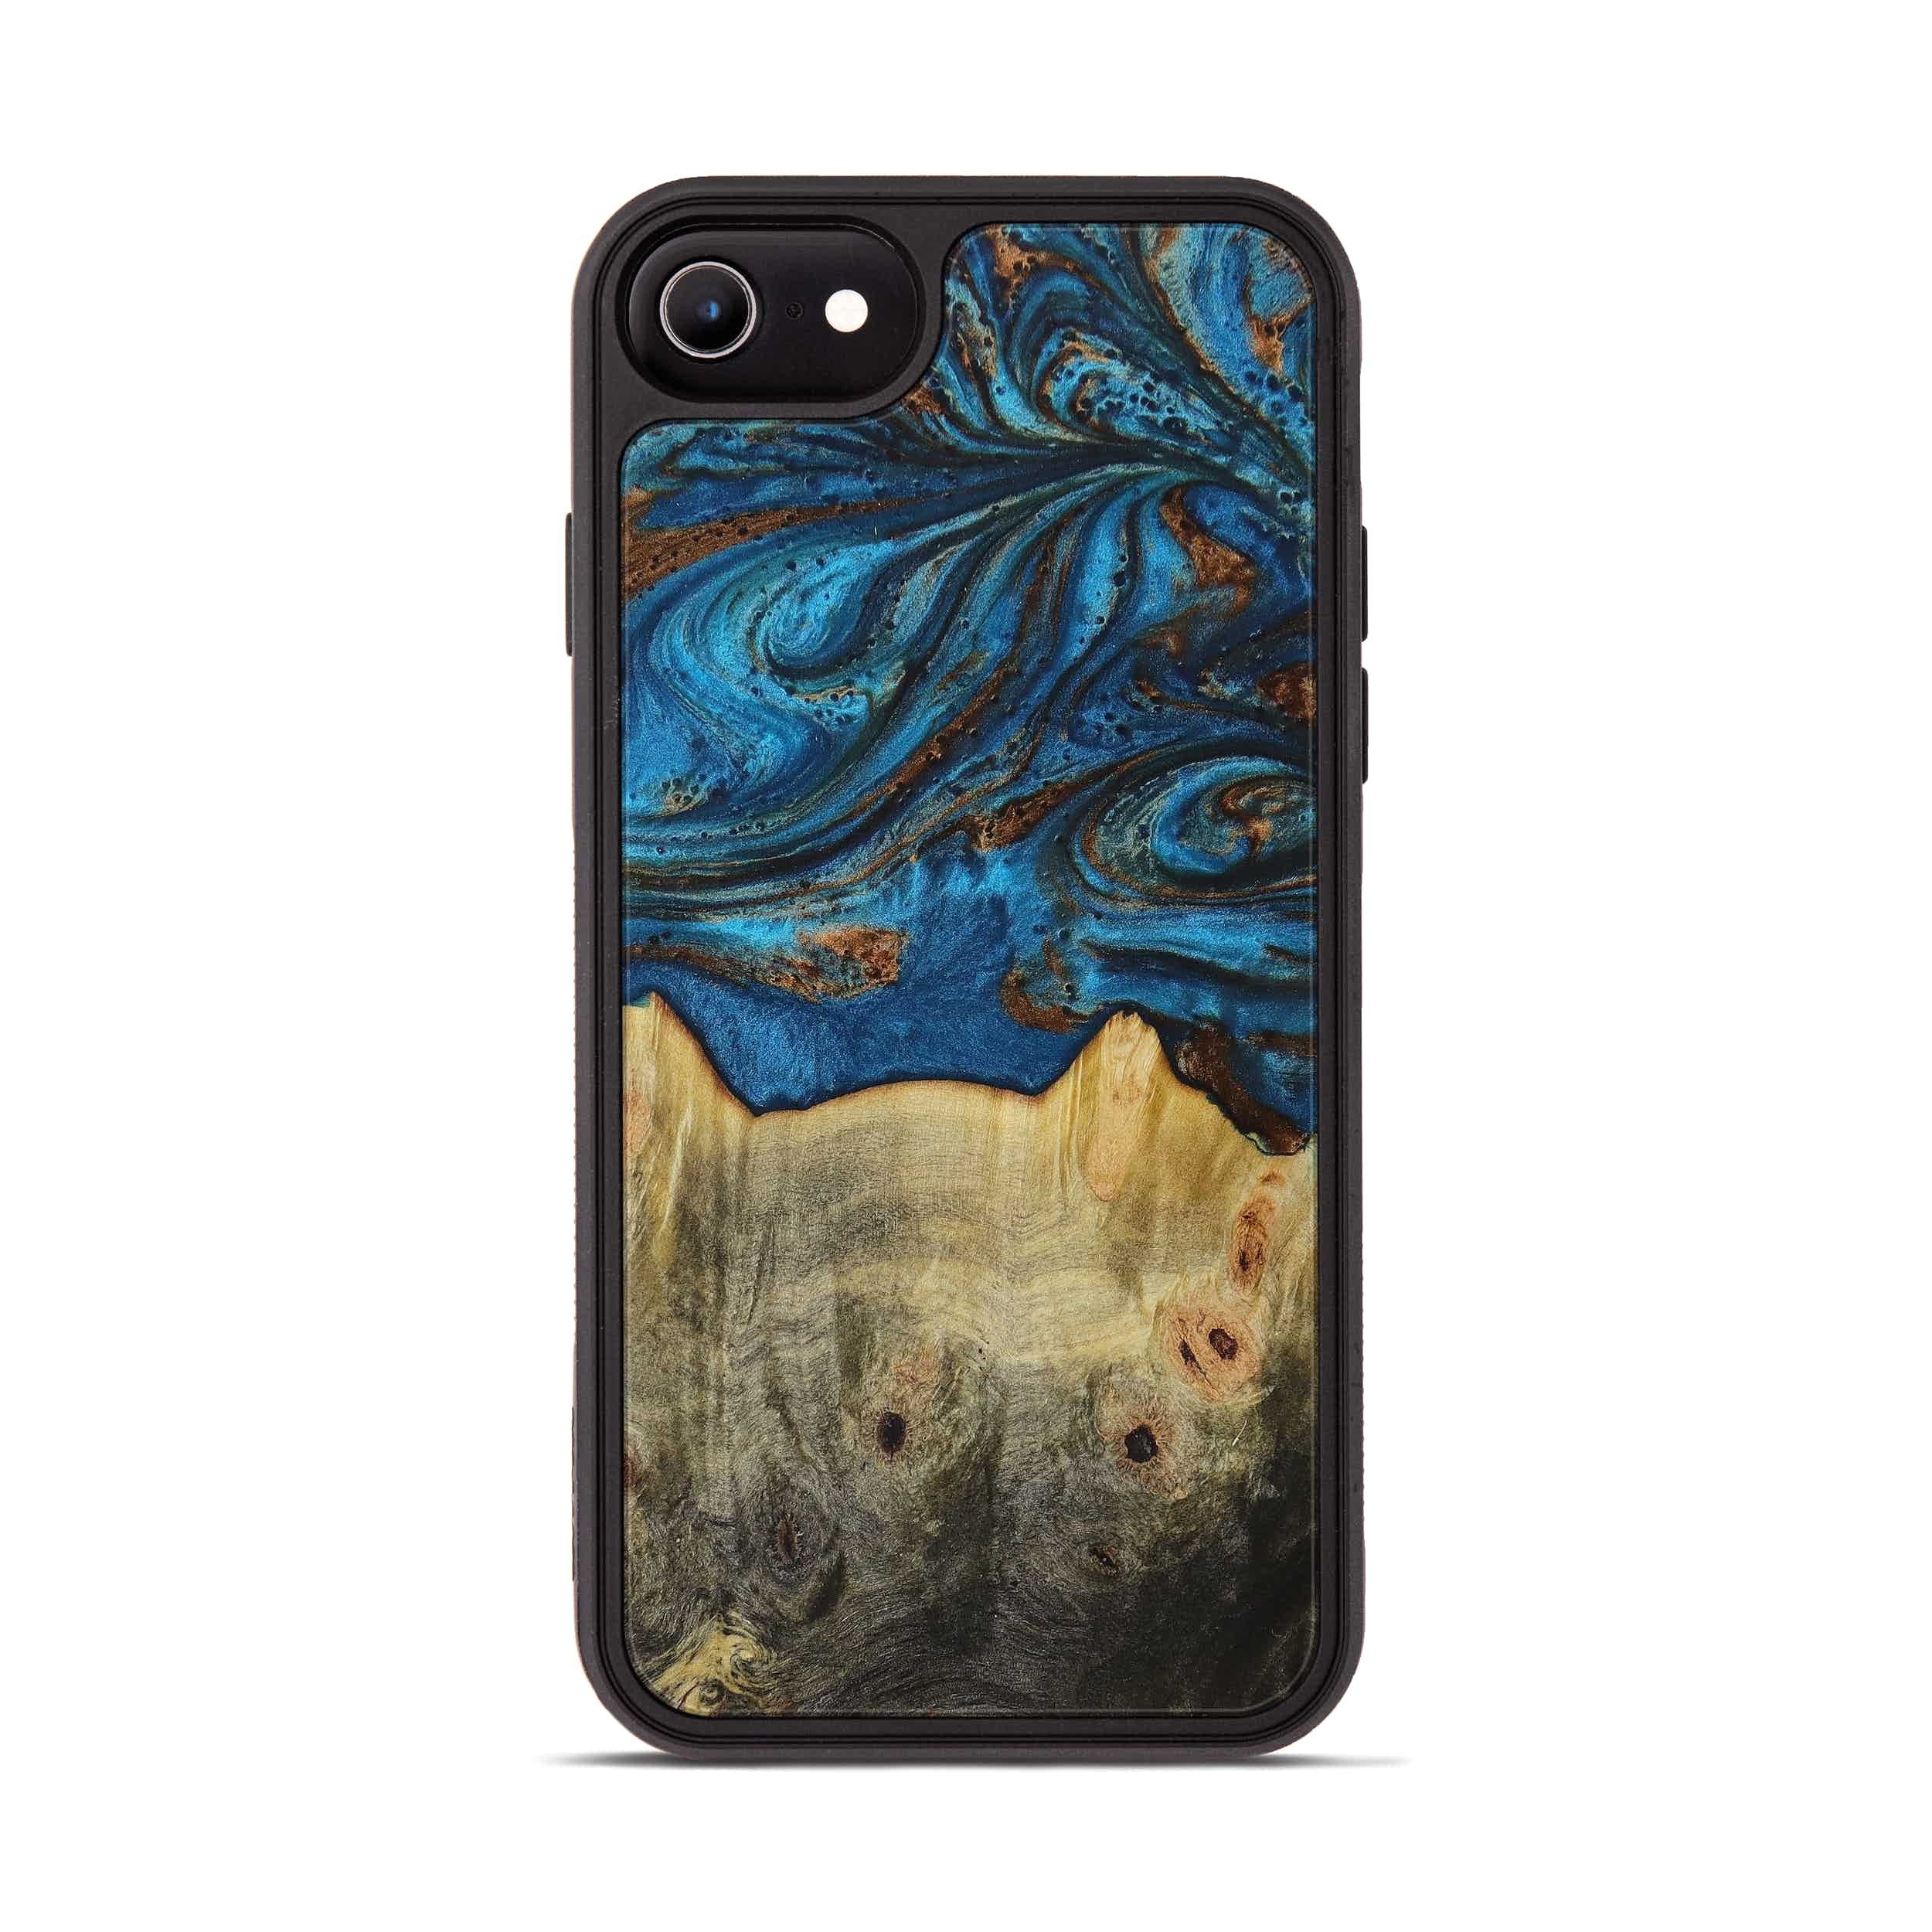 iPhone 8 Wood+Resin Phone Case - Jaffer (Teal & Gold, 394366)